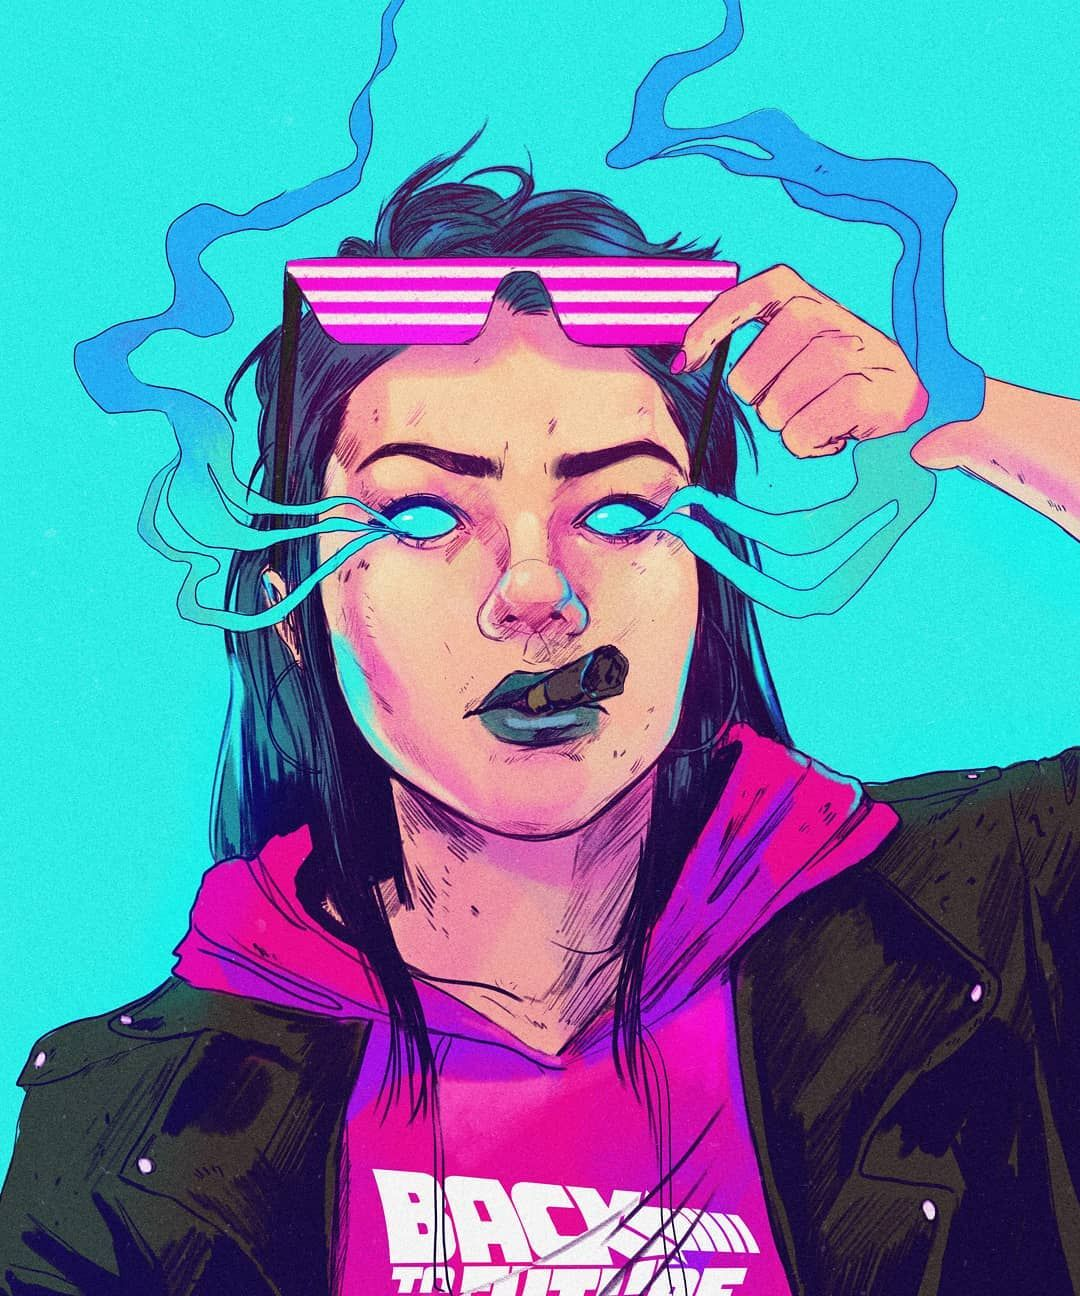 Back To Where New Drawing Trying Out My Skills With Blue Colors Cyberpunk Vaporwave Aesthetic Illustration Grunge Art Hippie Art Drawings